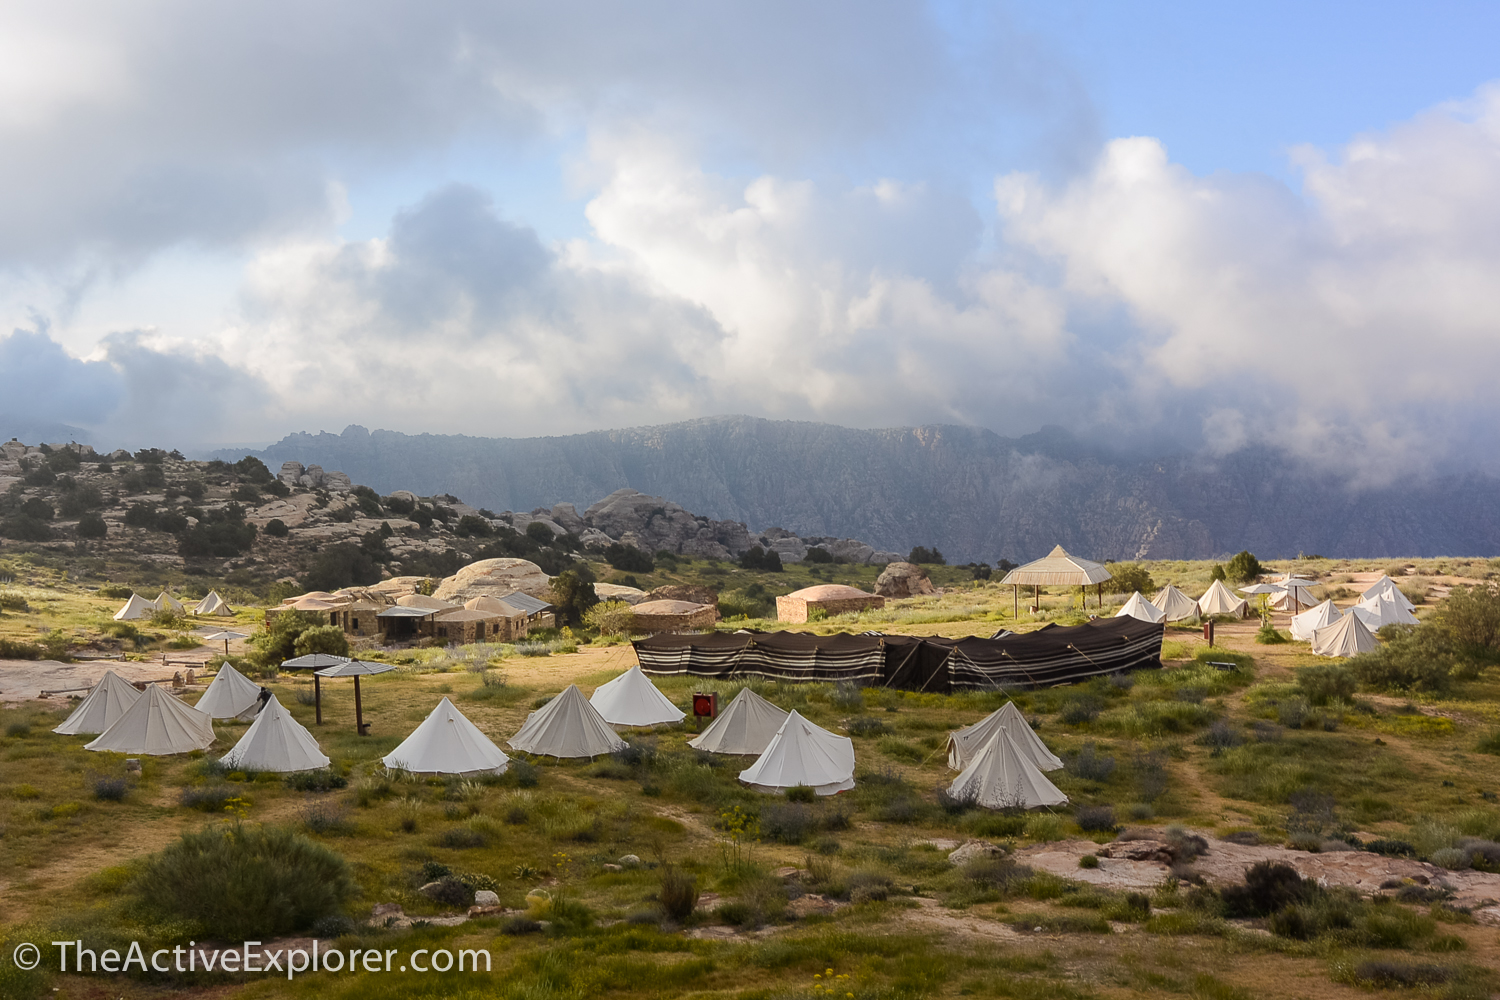 Tents of Rummana Camp, Jordan